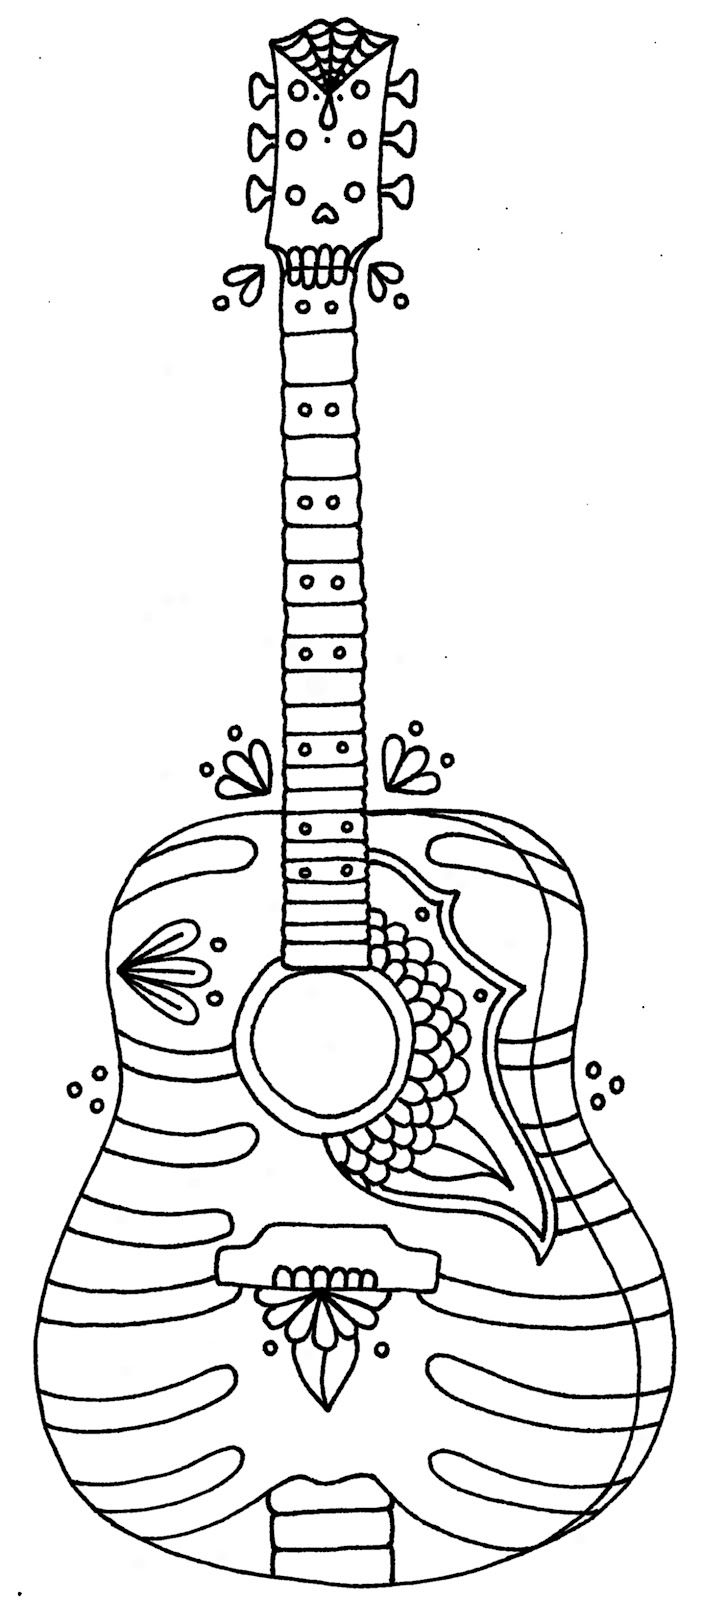 coloring music for kindergarten get this preschool printables of music coloring pages free kindergarten music coloring for